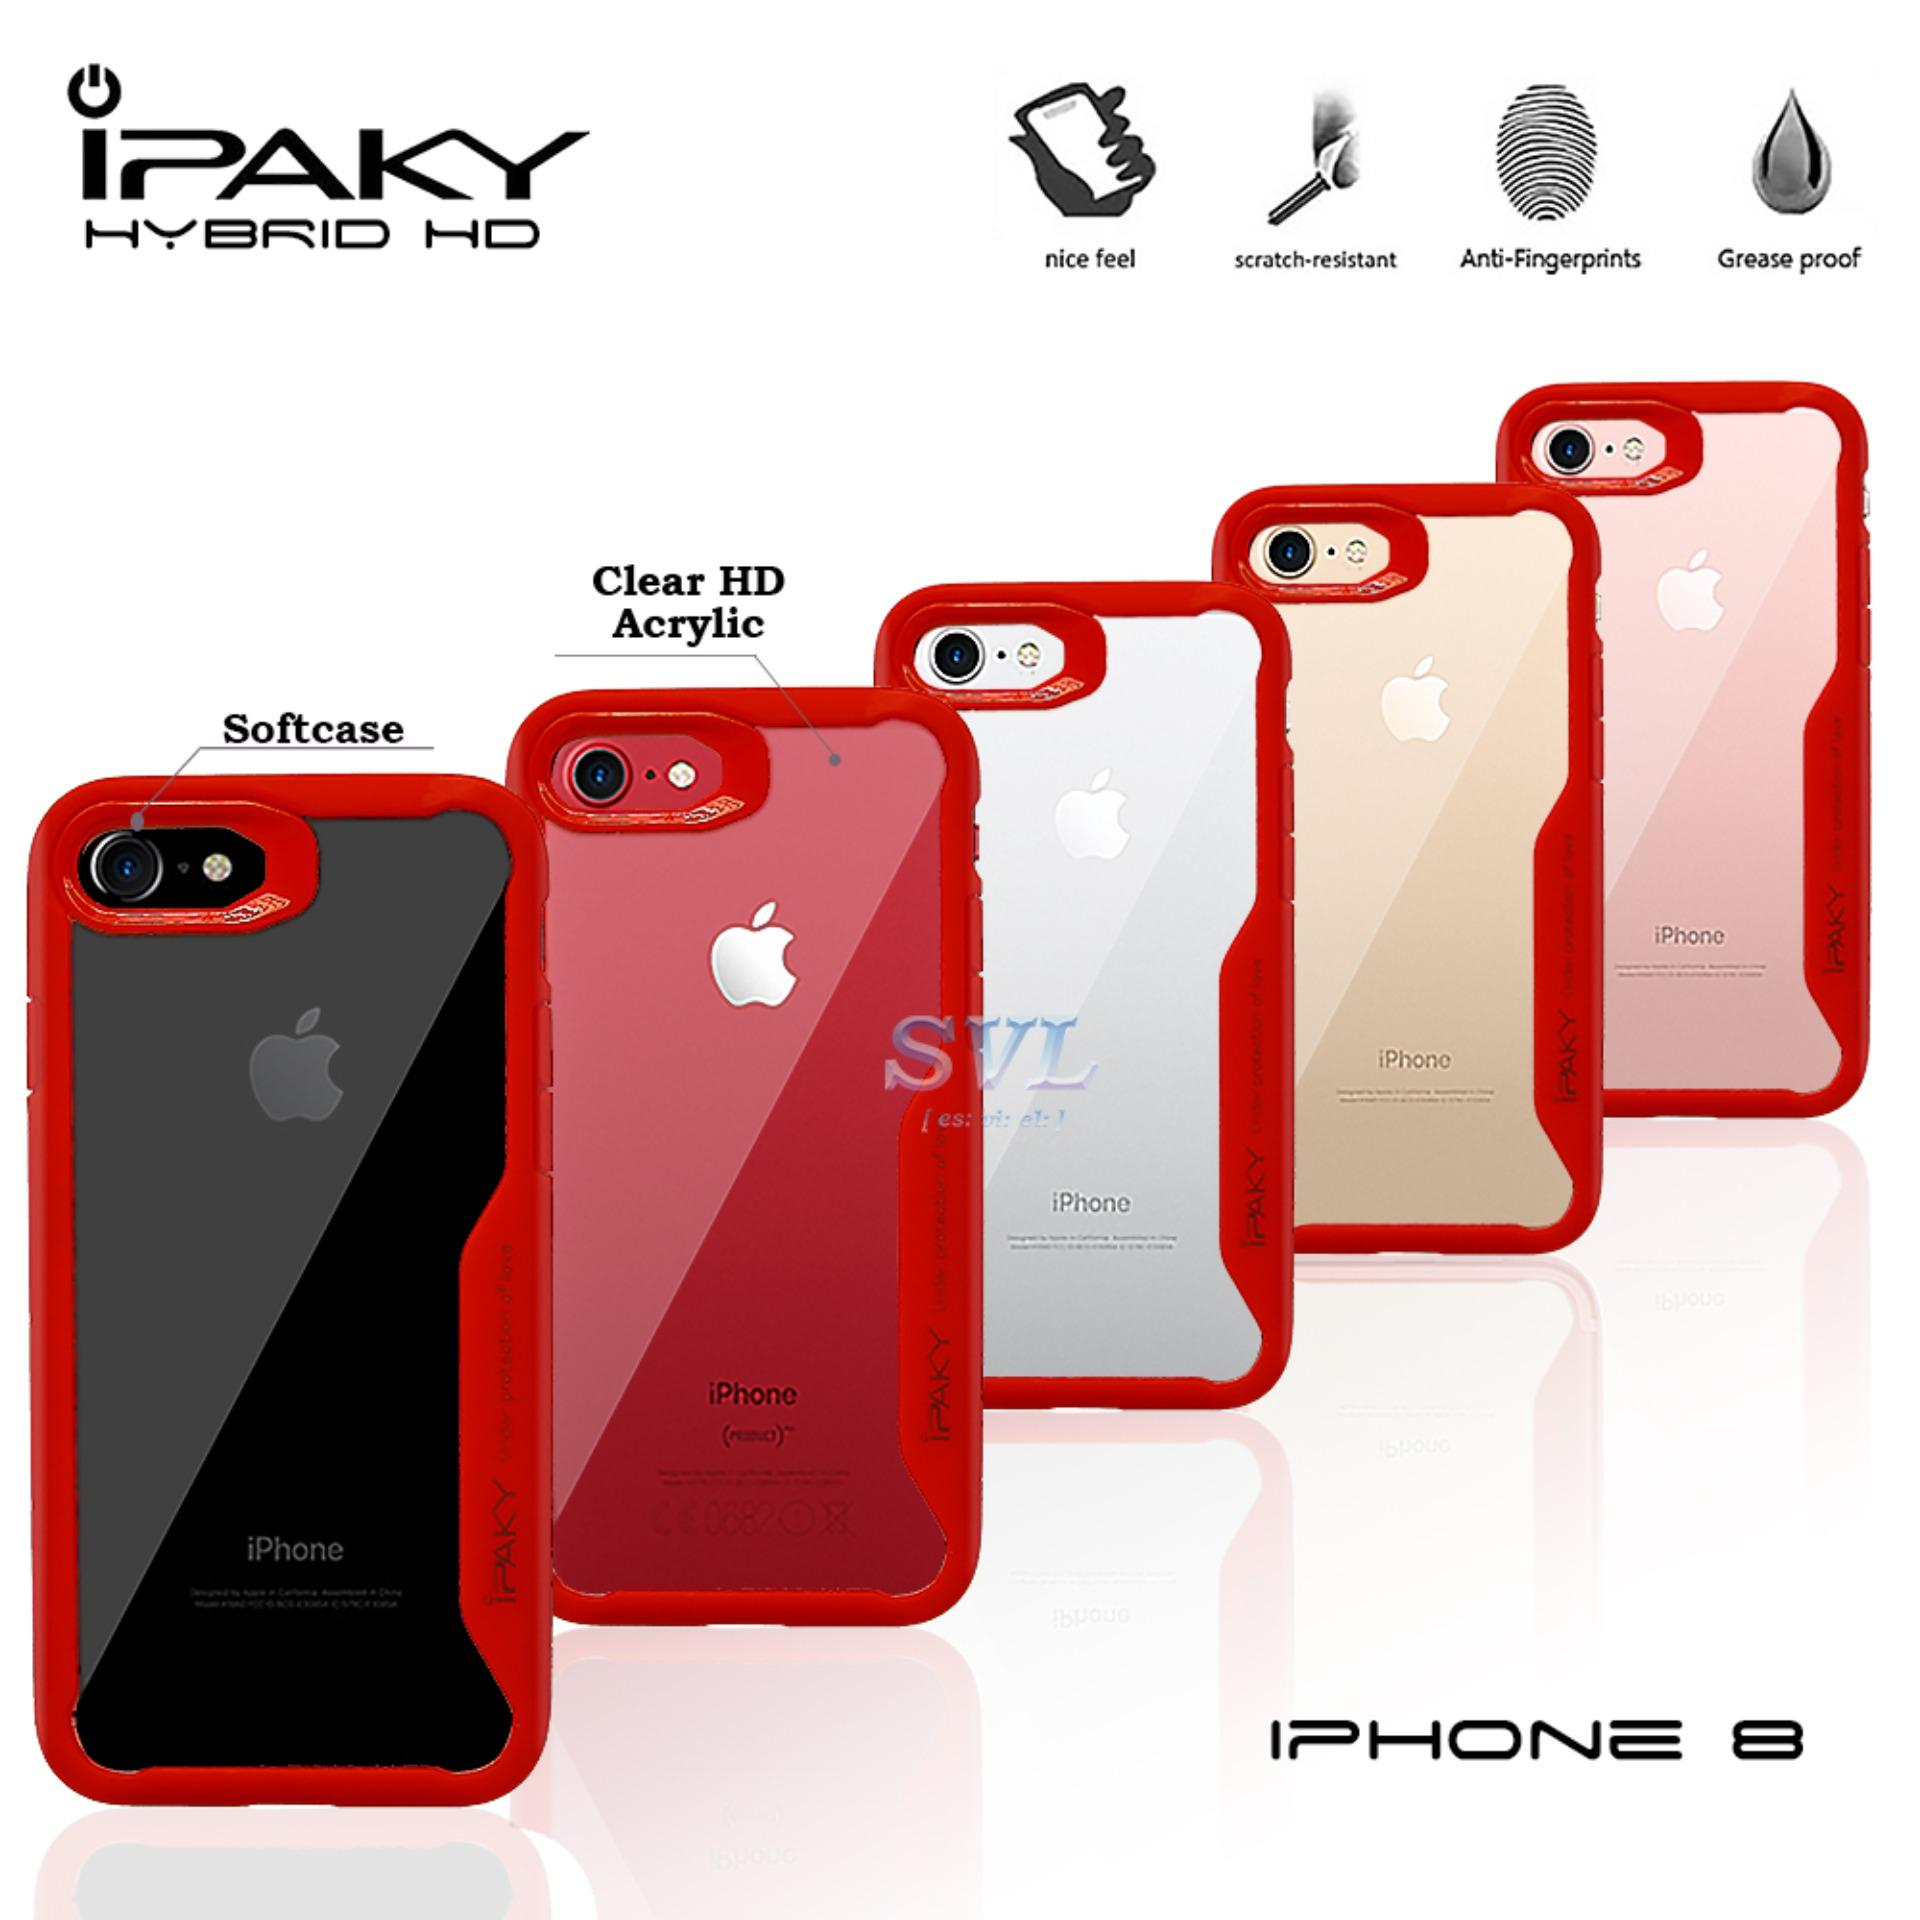 Case Ipaky Soft Carbon Shockproof For Samsung Galaxy J7 Prime On7 Peonia Electroplating Transparent Ultrathin Hitam Harga Acrylic Hybrid Tg Source Hd Iphone 8